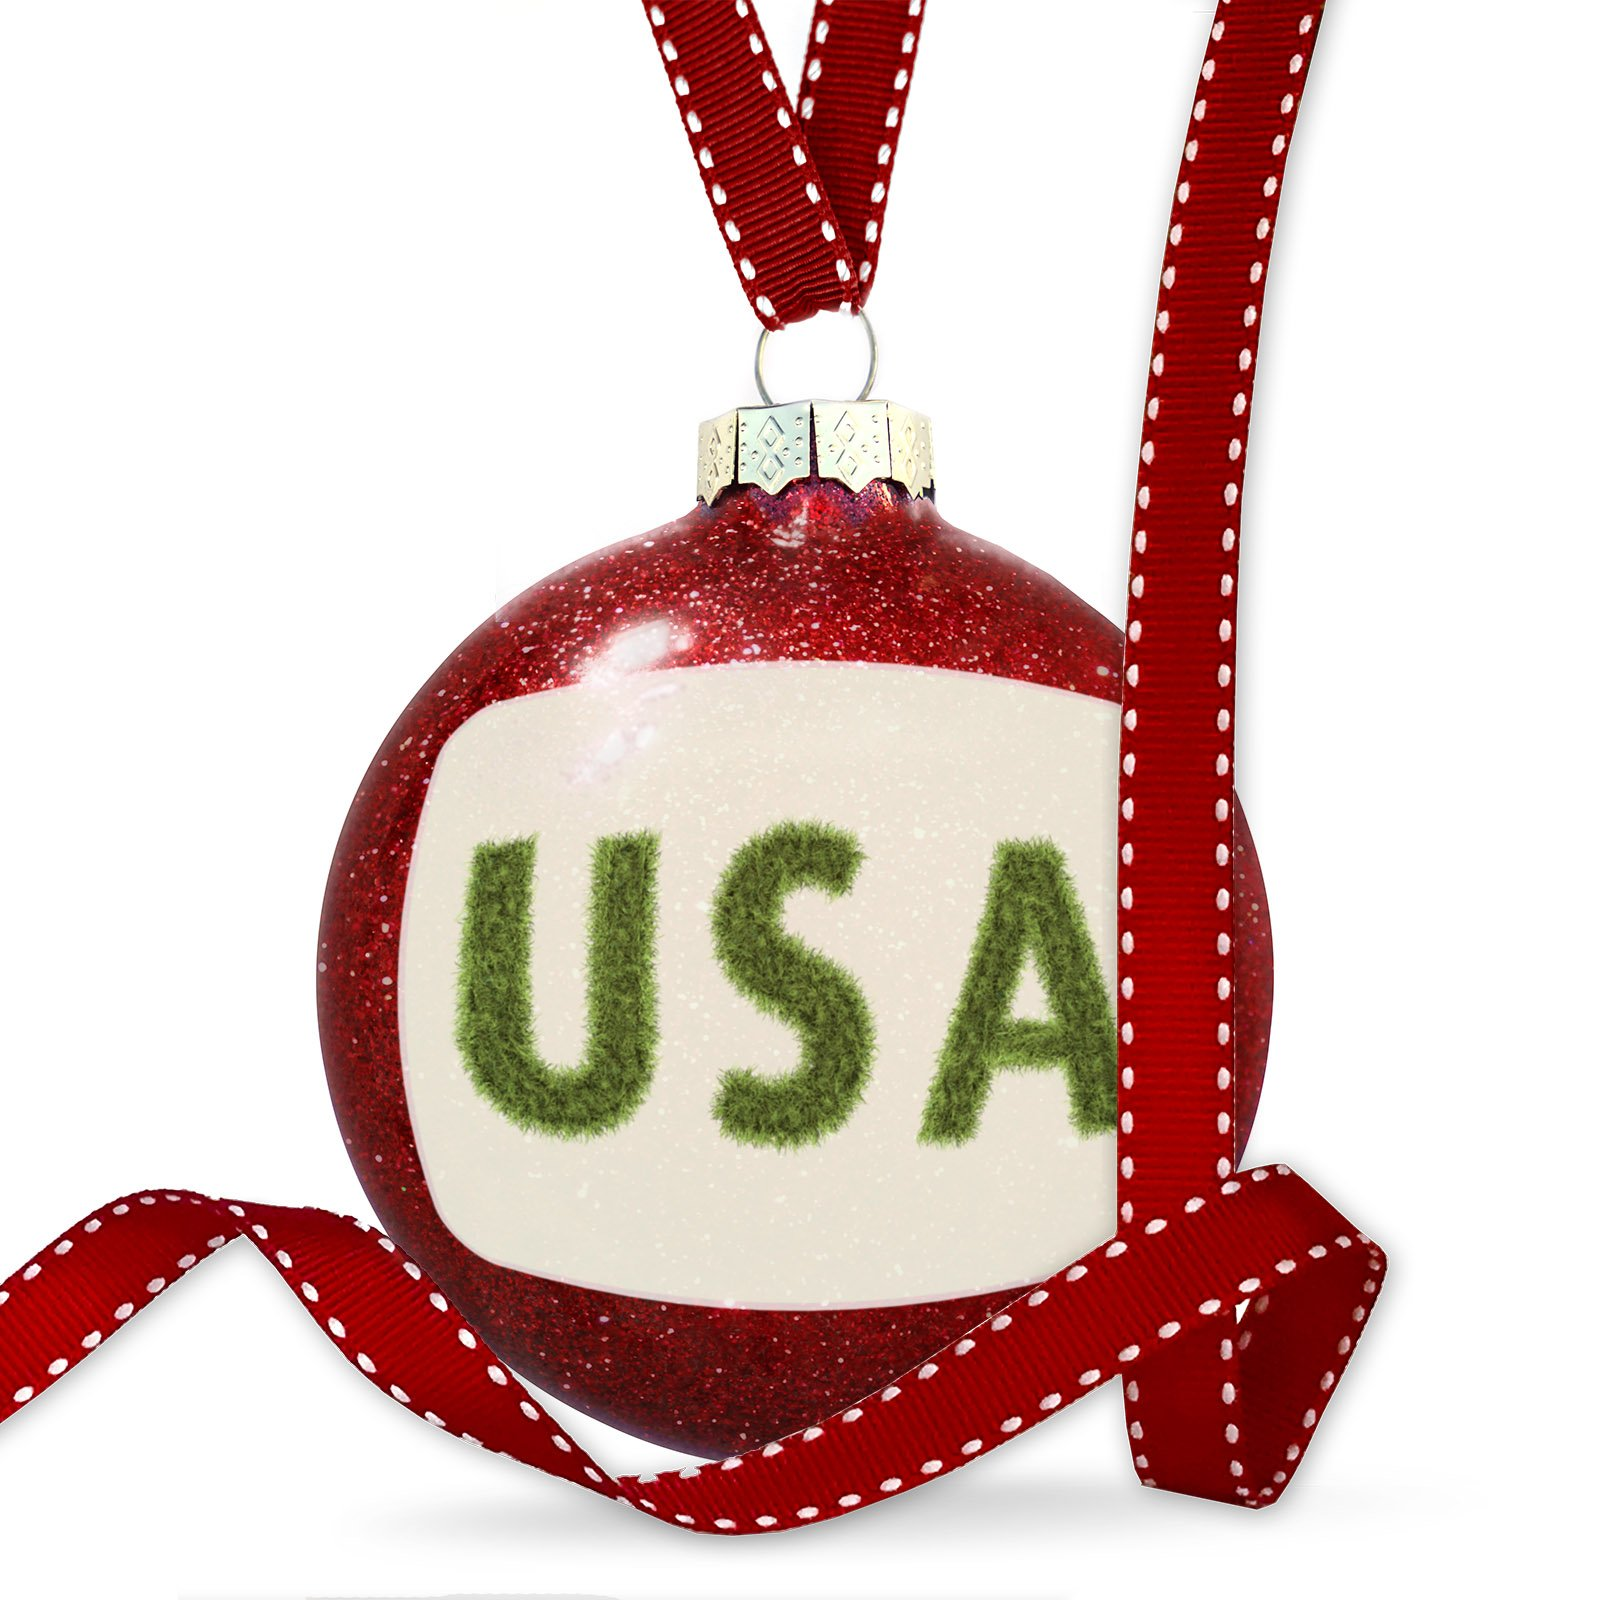 Christmas Decoration United States of America Field Grass Ornament